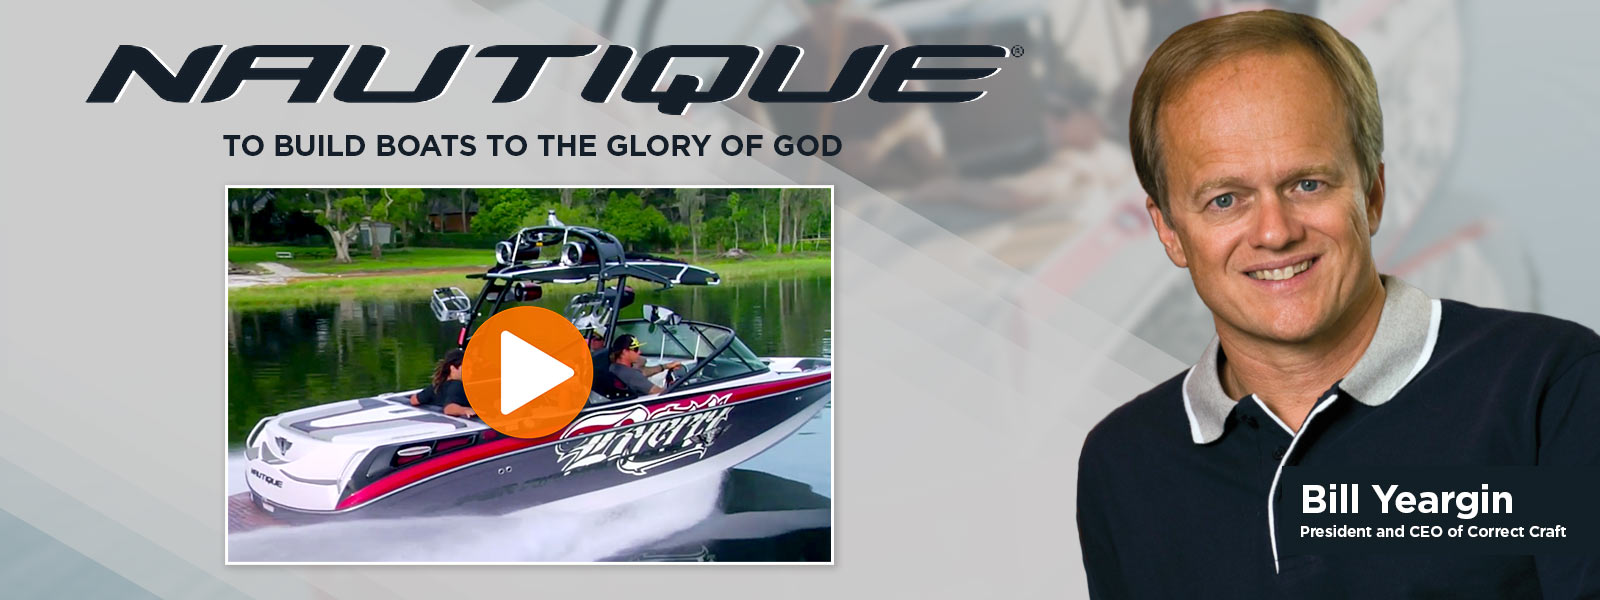 Nautique: Building Boats for the Glory of God